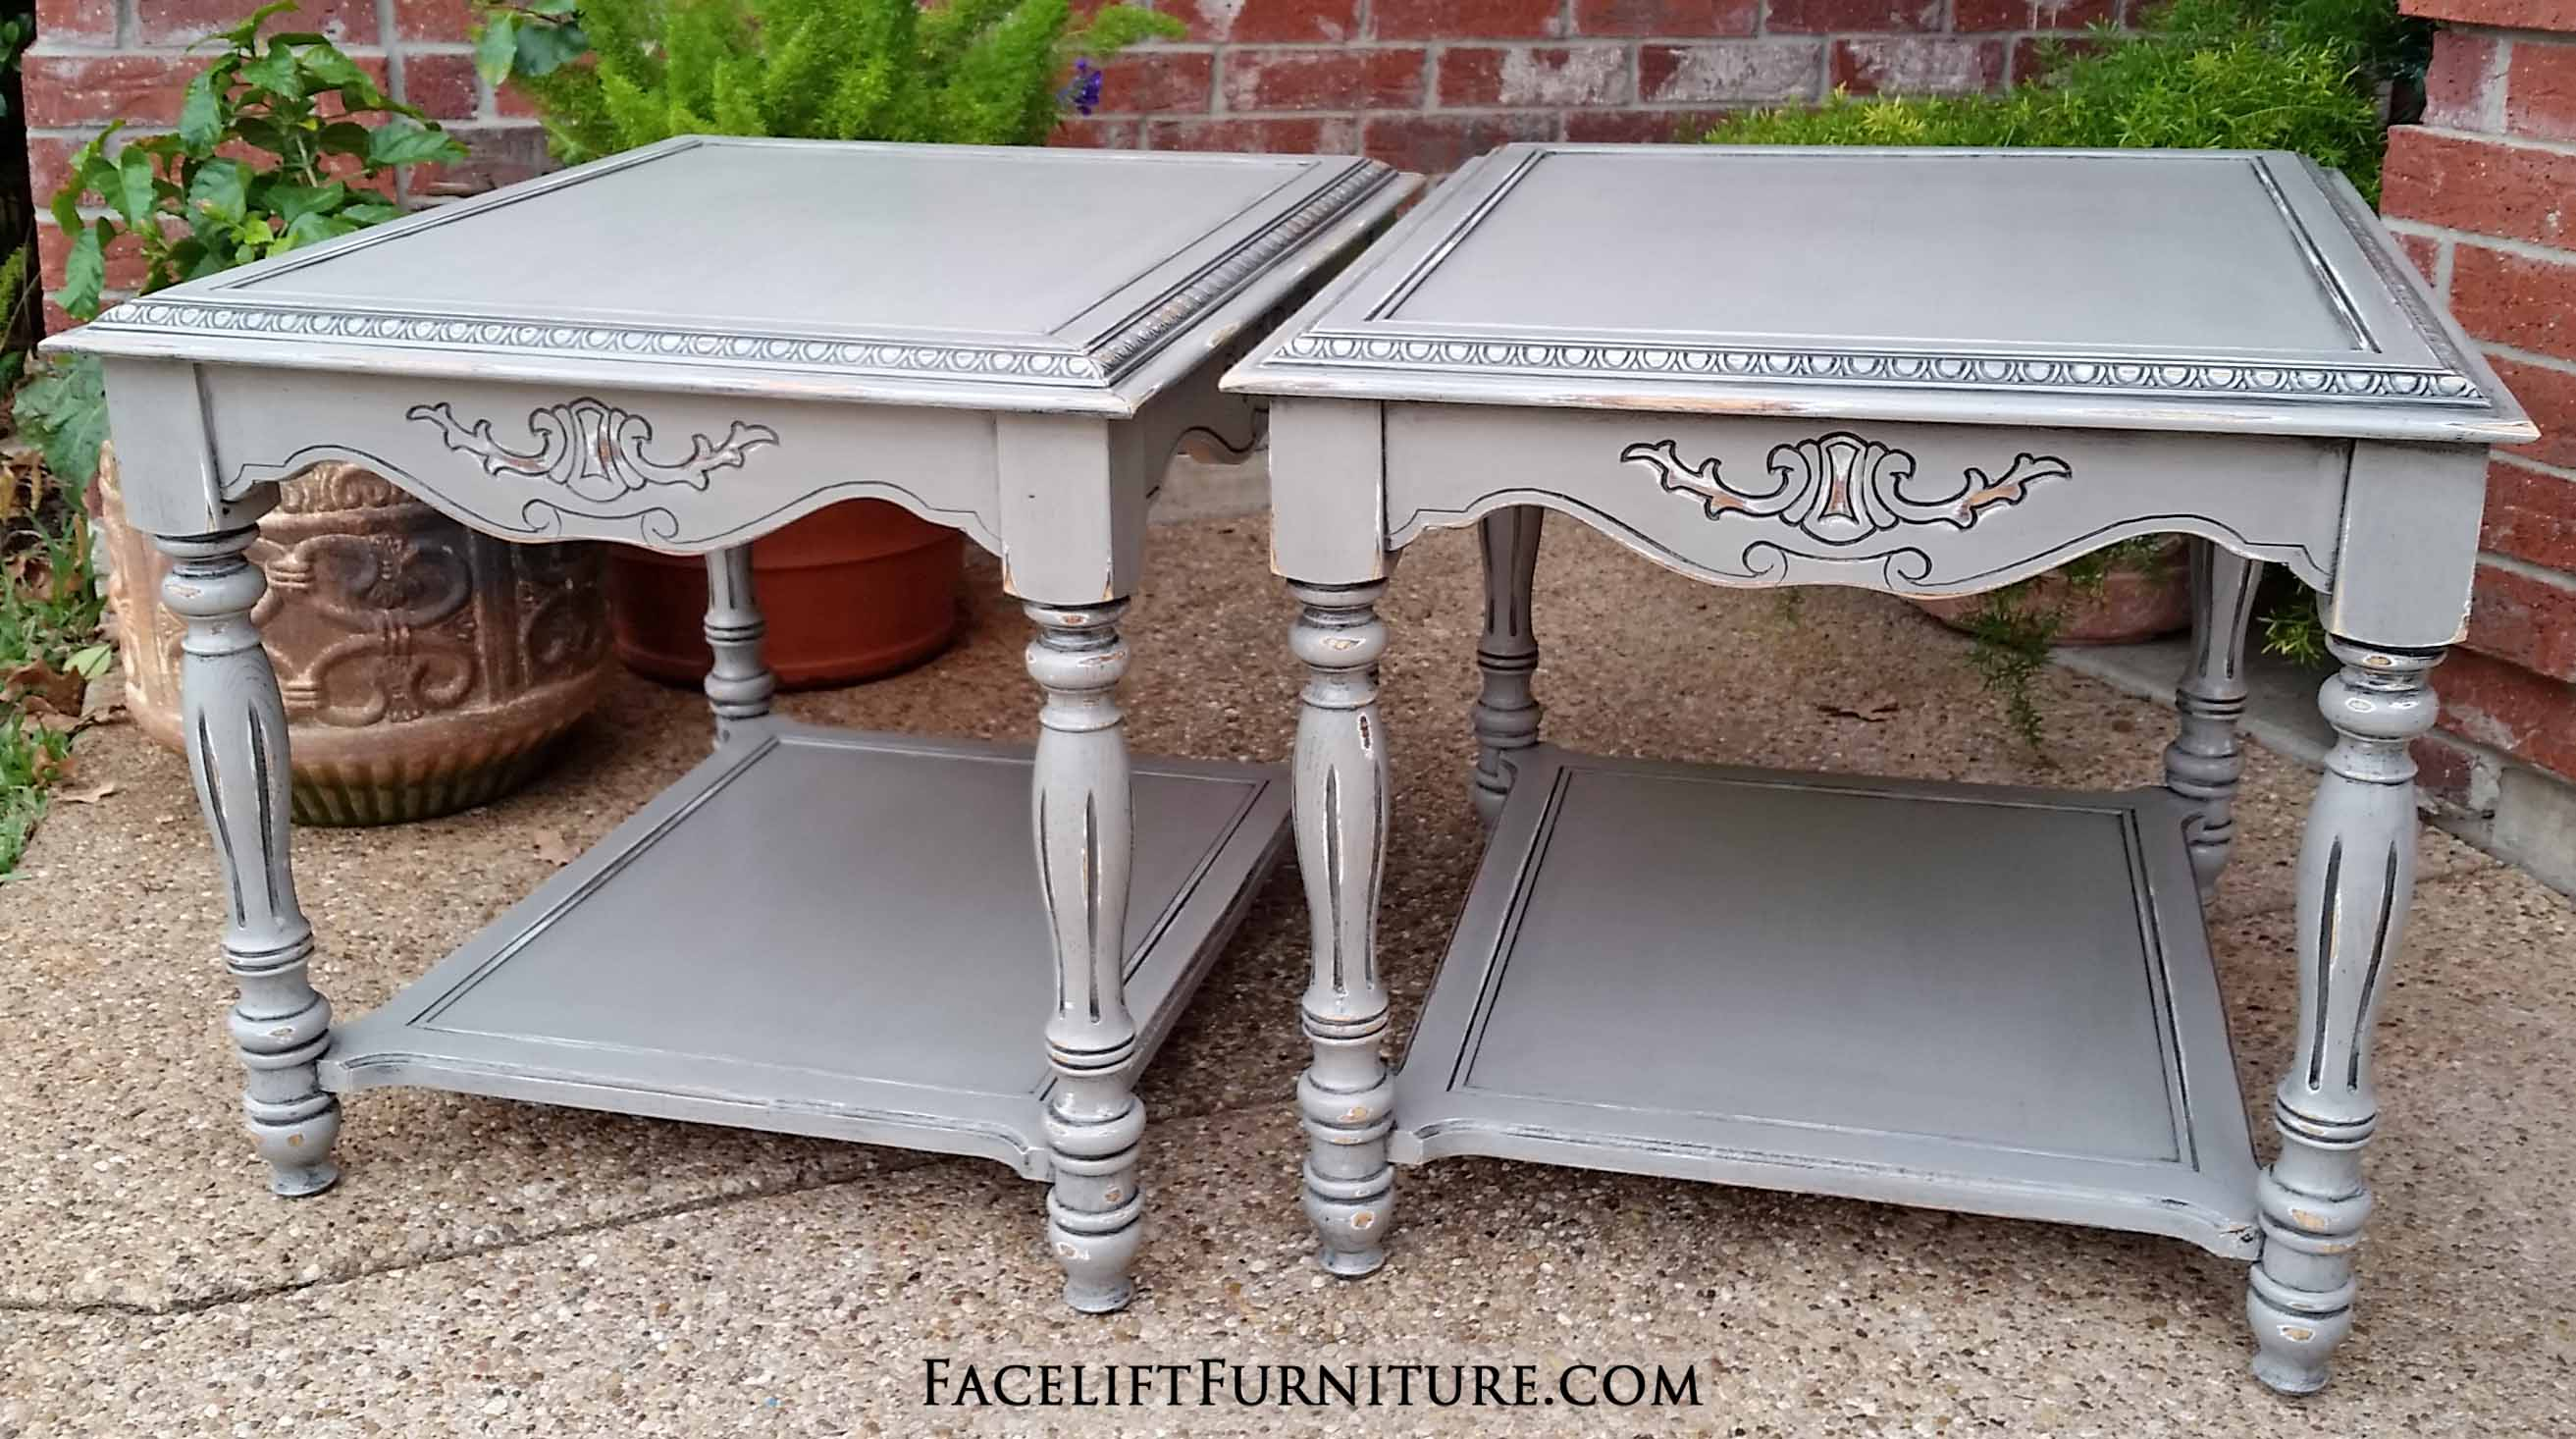 For Sale $100 U2013 Ornate End Tables In Aspen Gray With Black Glaze.  Distressing Reveals White Primer And Original Wood Tones. 27u2033 Long, 23u2033  Wide, 21u2033 Tall.